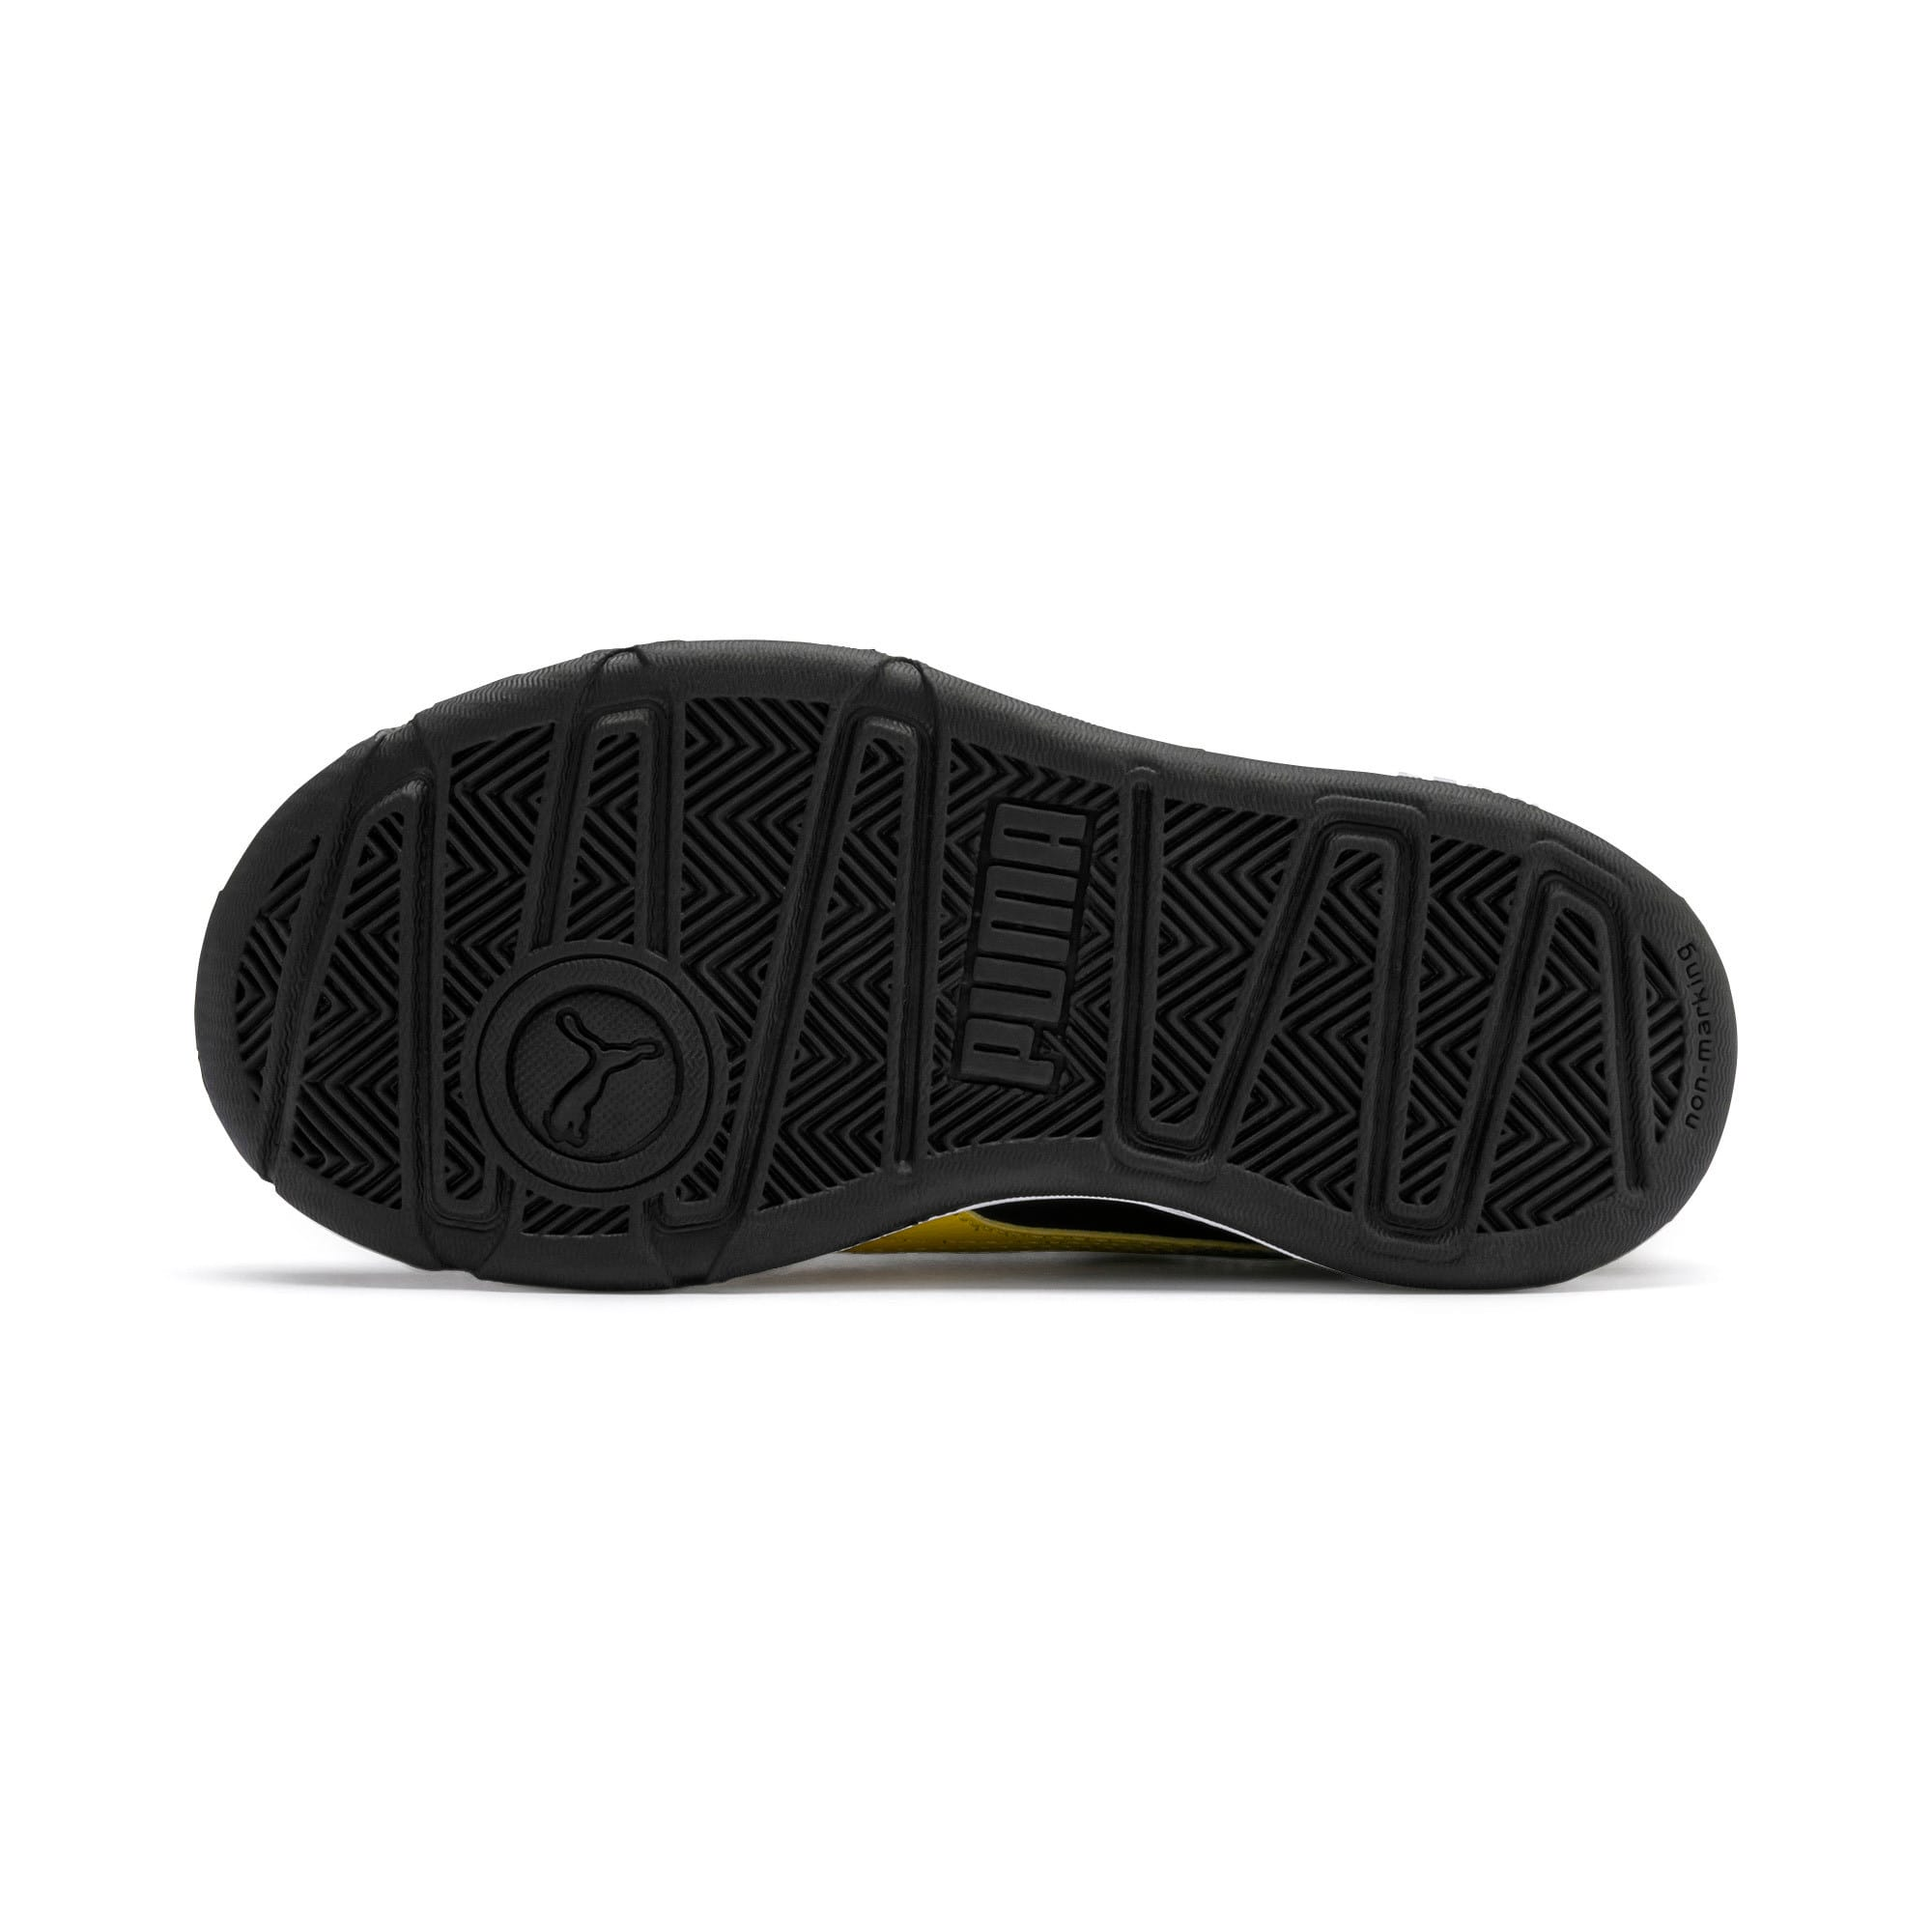 Thumbnail 4 of Stepfleex 2 SL VE V Kids' Trainers, Puma Black-Sulphur-White, medium-IND